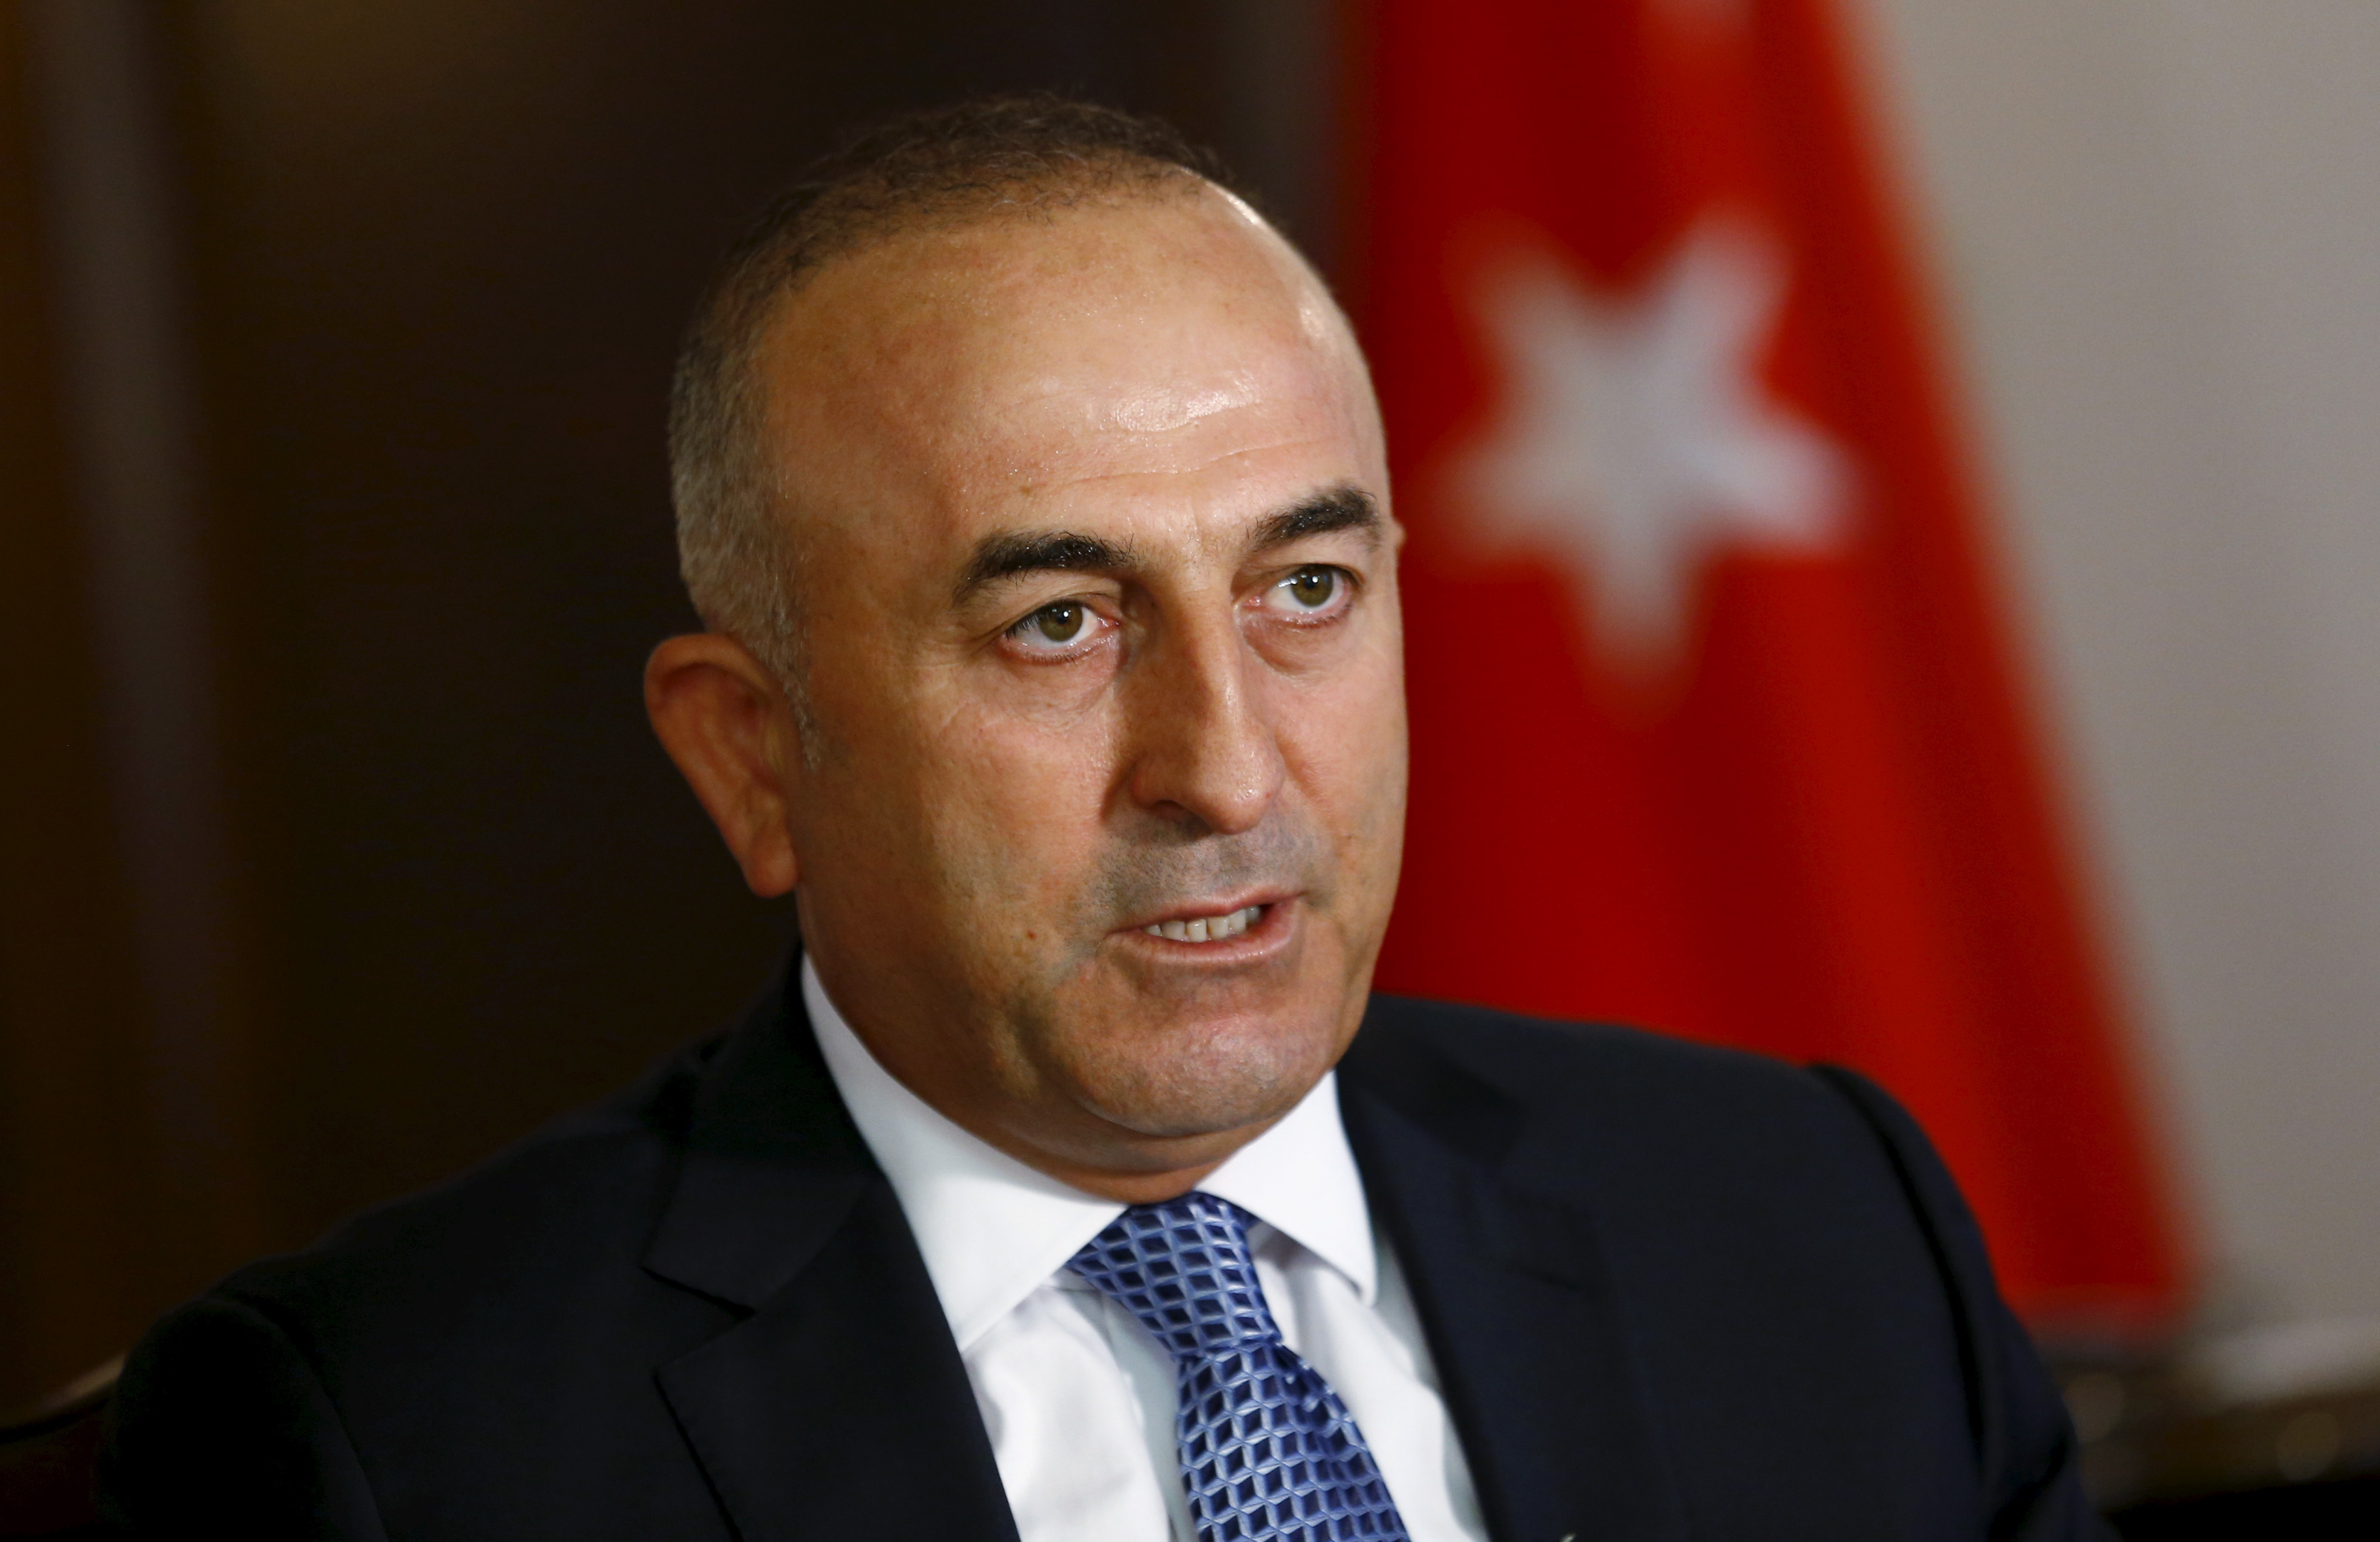 Turkey's Foreign Minister Mevlut Cavusoglu answers a question during an interview in Ankara on Aug. 24, 2015